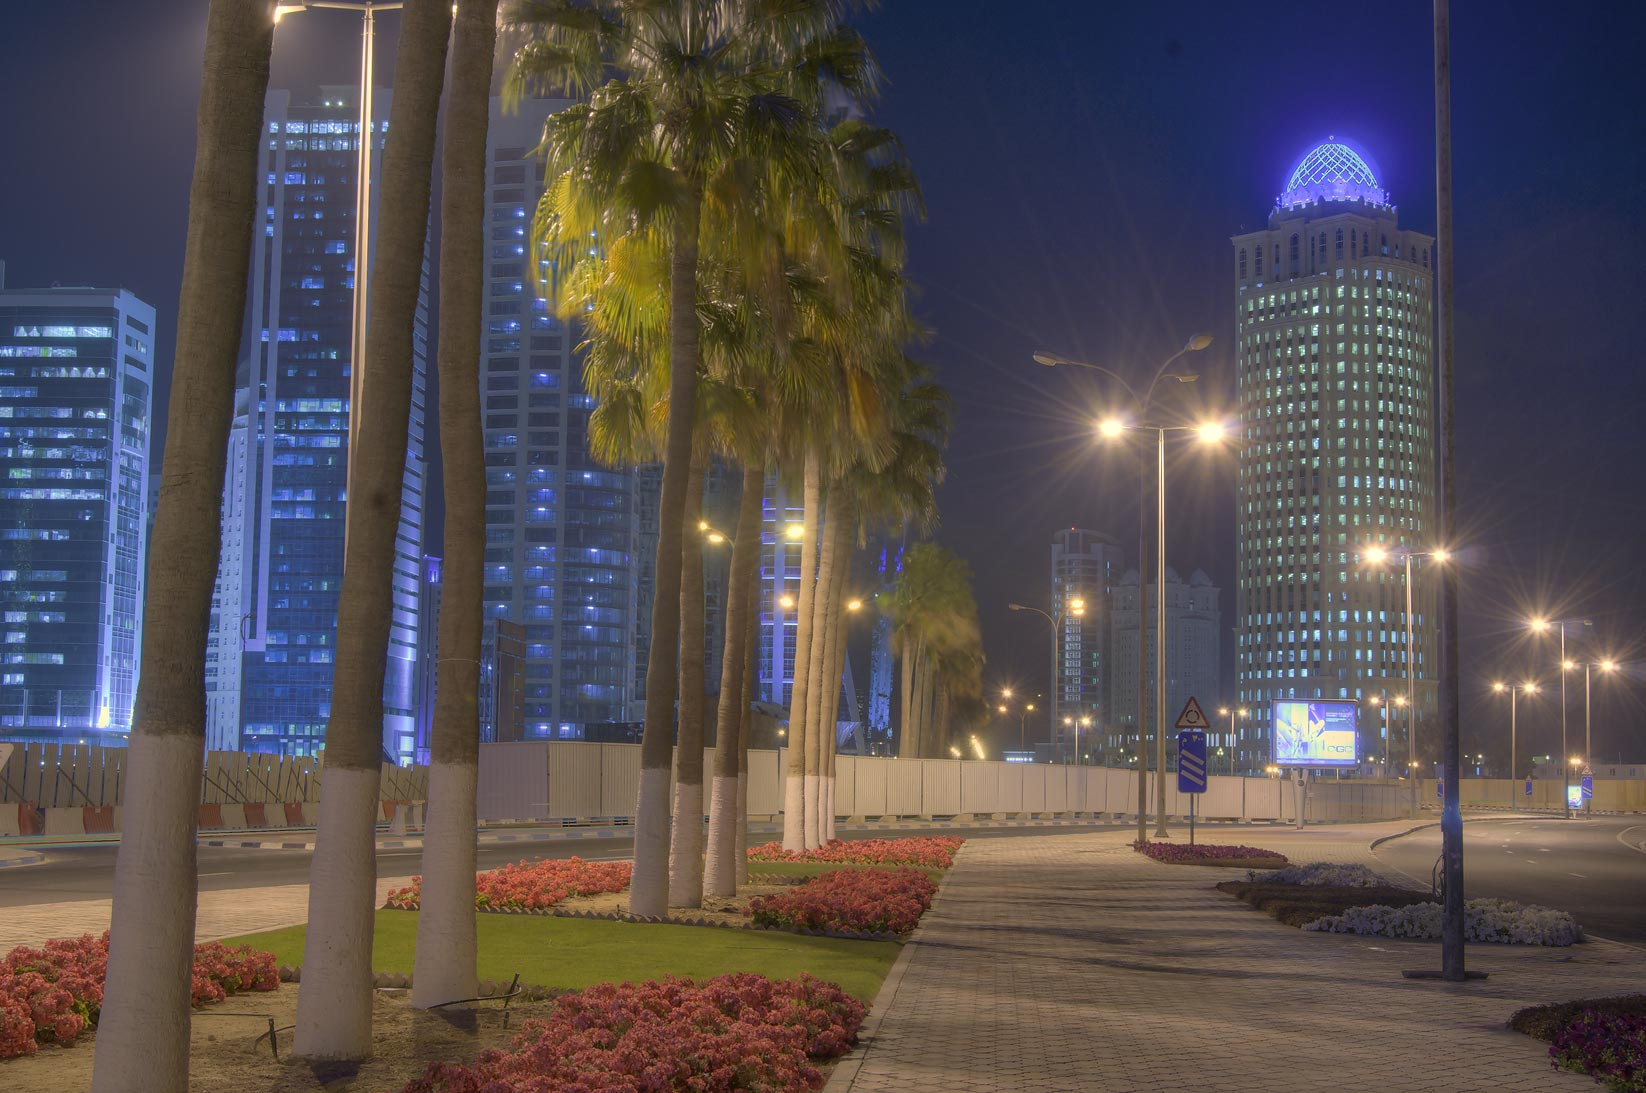 Al Cornichest St. in West Bay, with Qtel Tower in background. Doha, Qatar